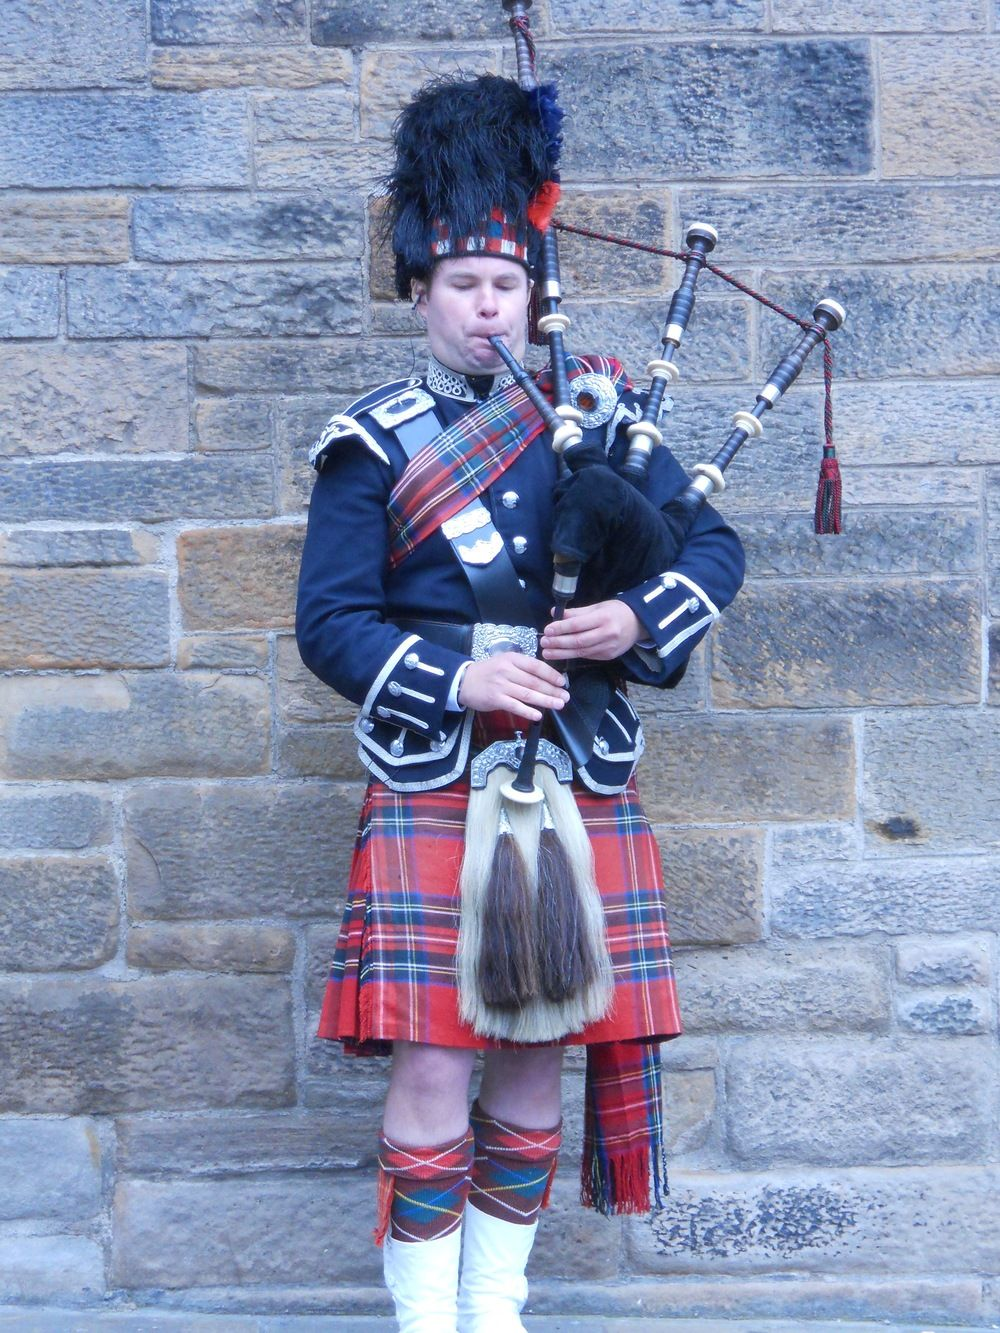 Bag piper on the streets of Edinburgh